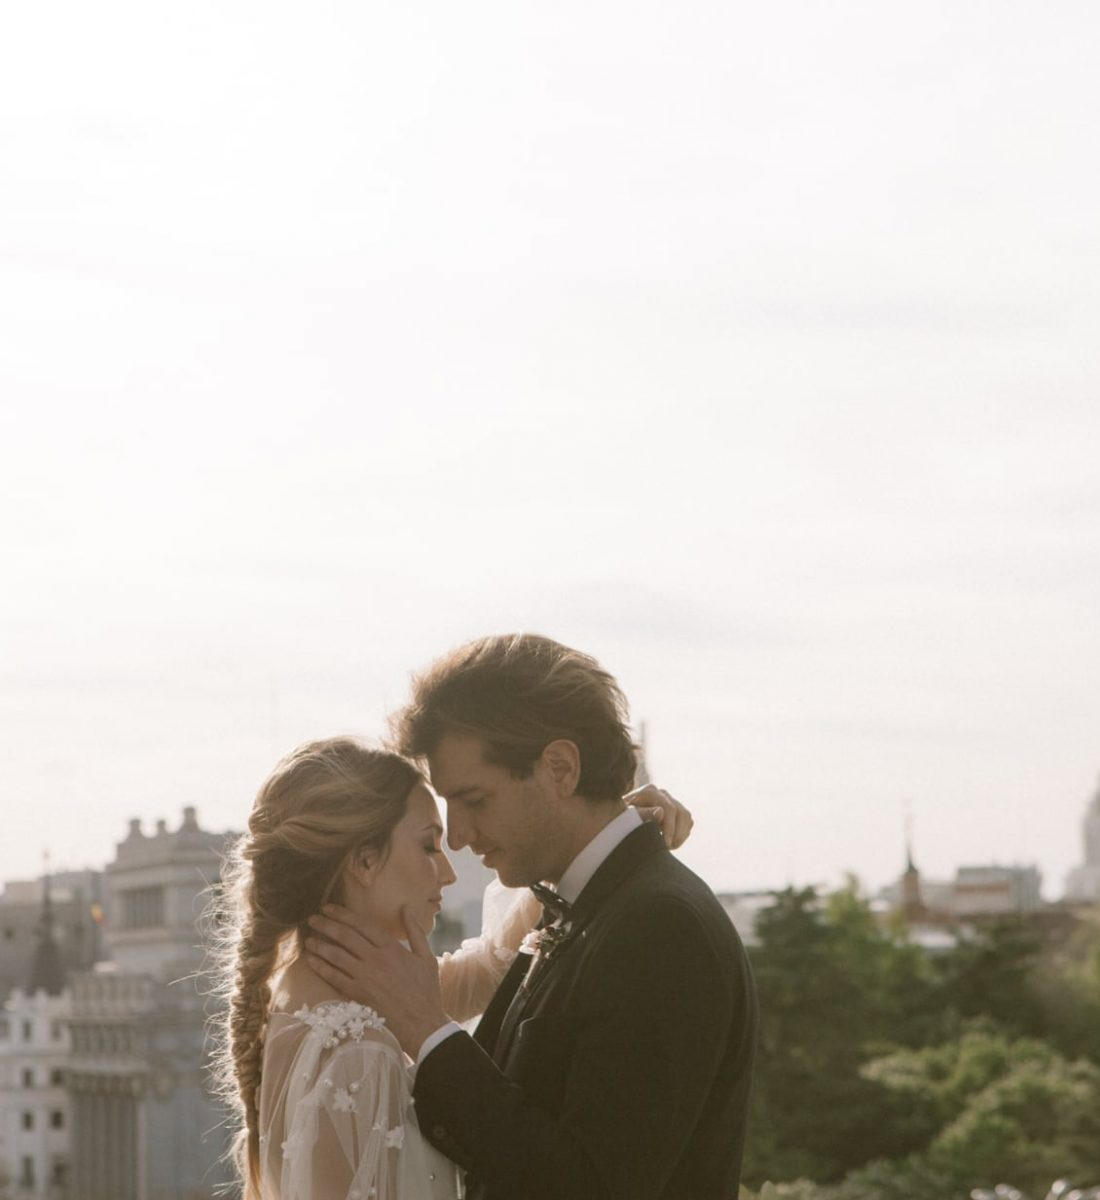 Urban And Elegant Photo Shooting Inspiration Wedding In The